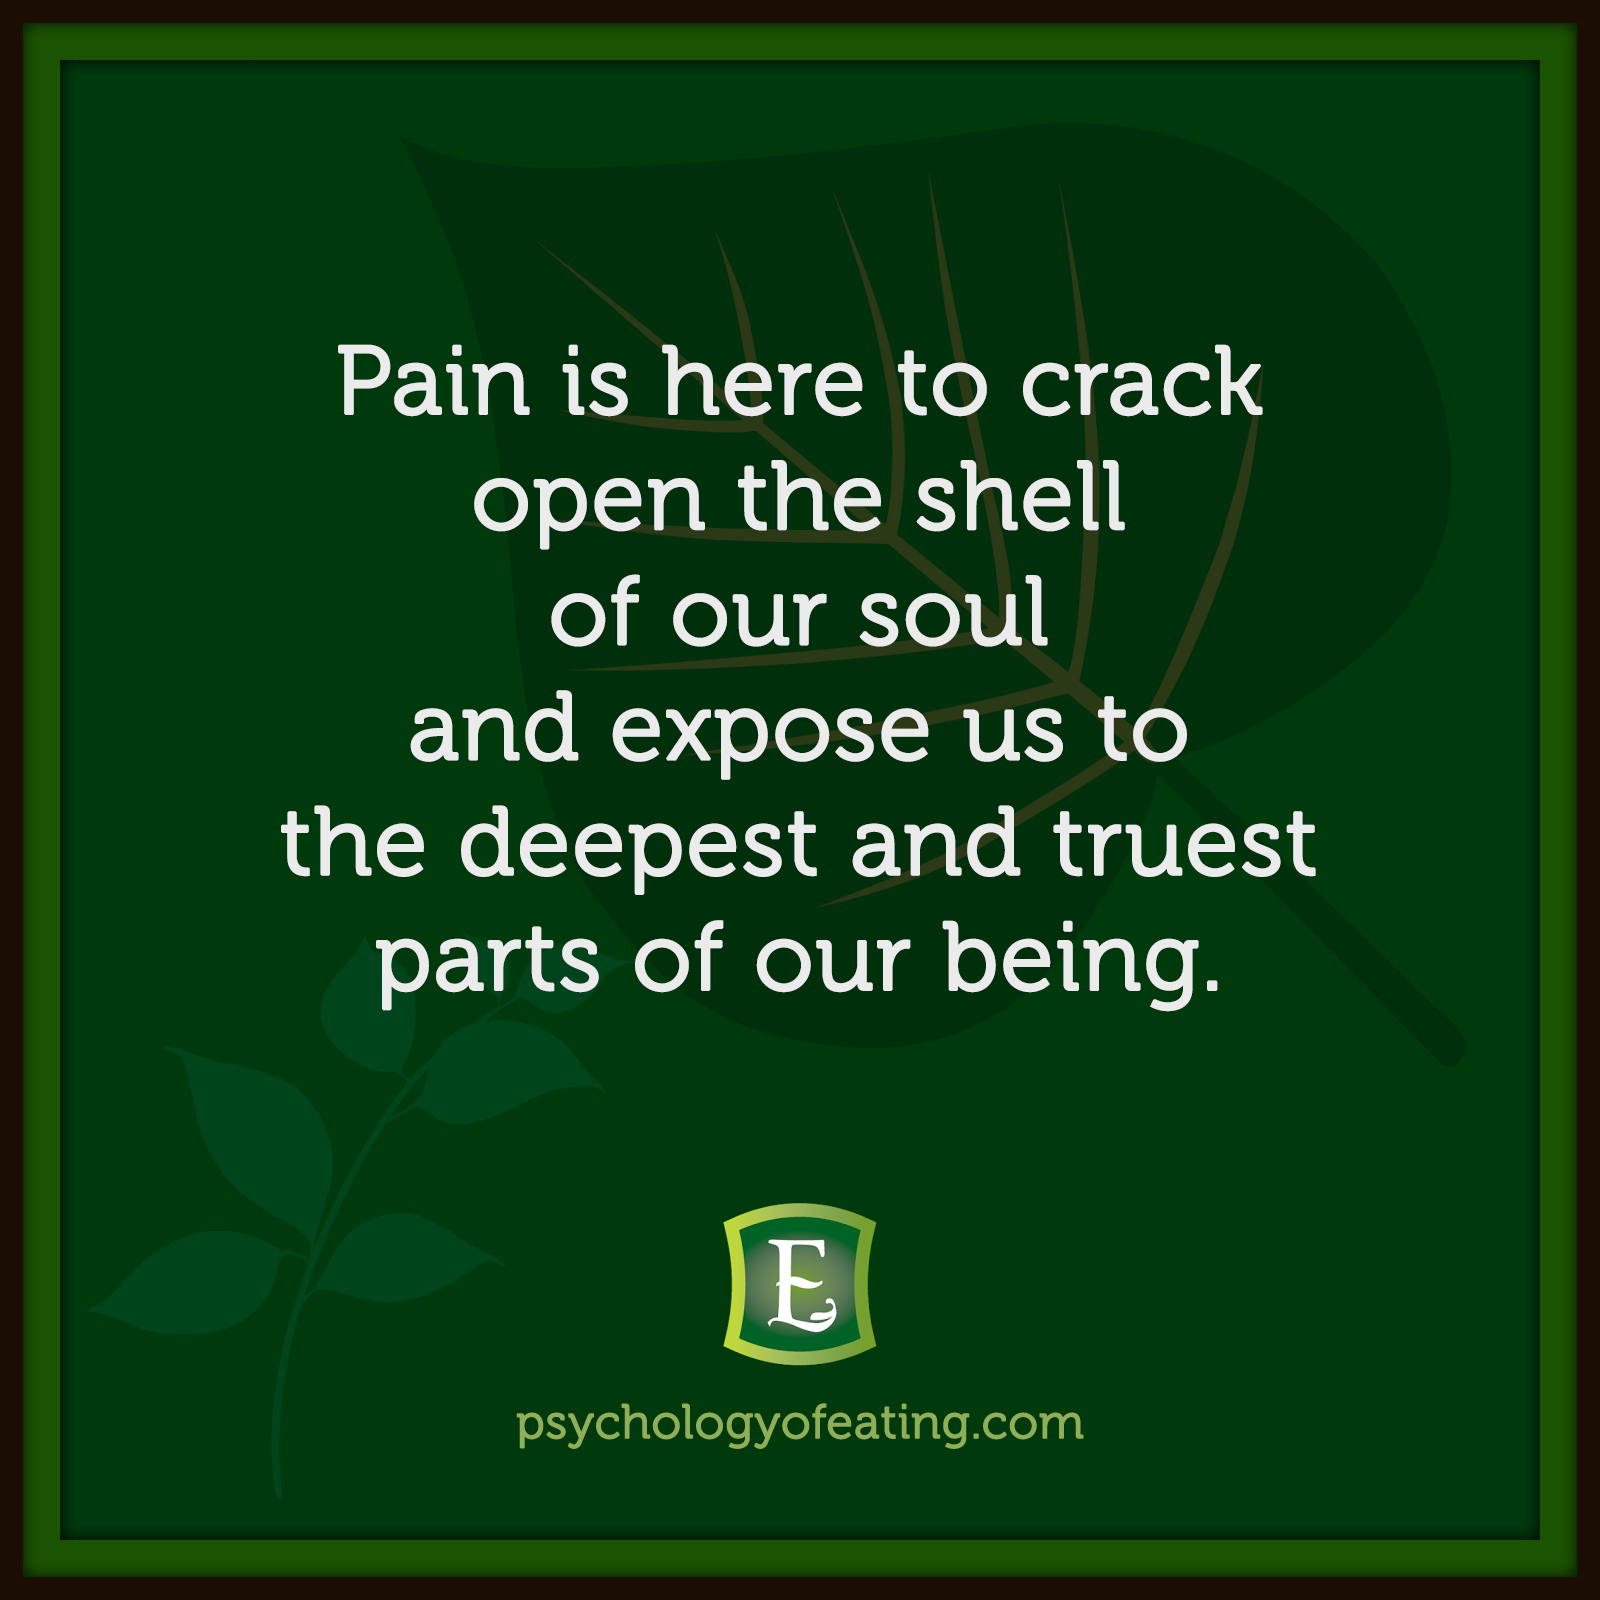 Pain is here to crack open the shell of our soul and expose us to the deepest and truest parts of our being.  #health #nutrition #eatingpsychology #IPE